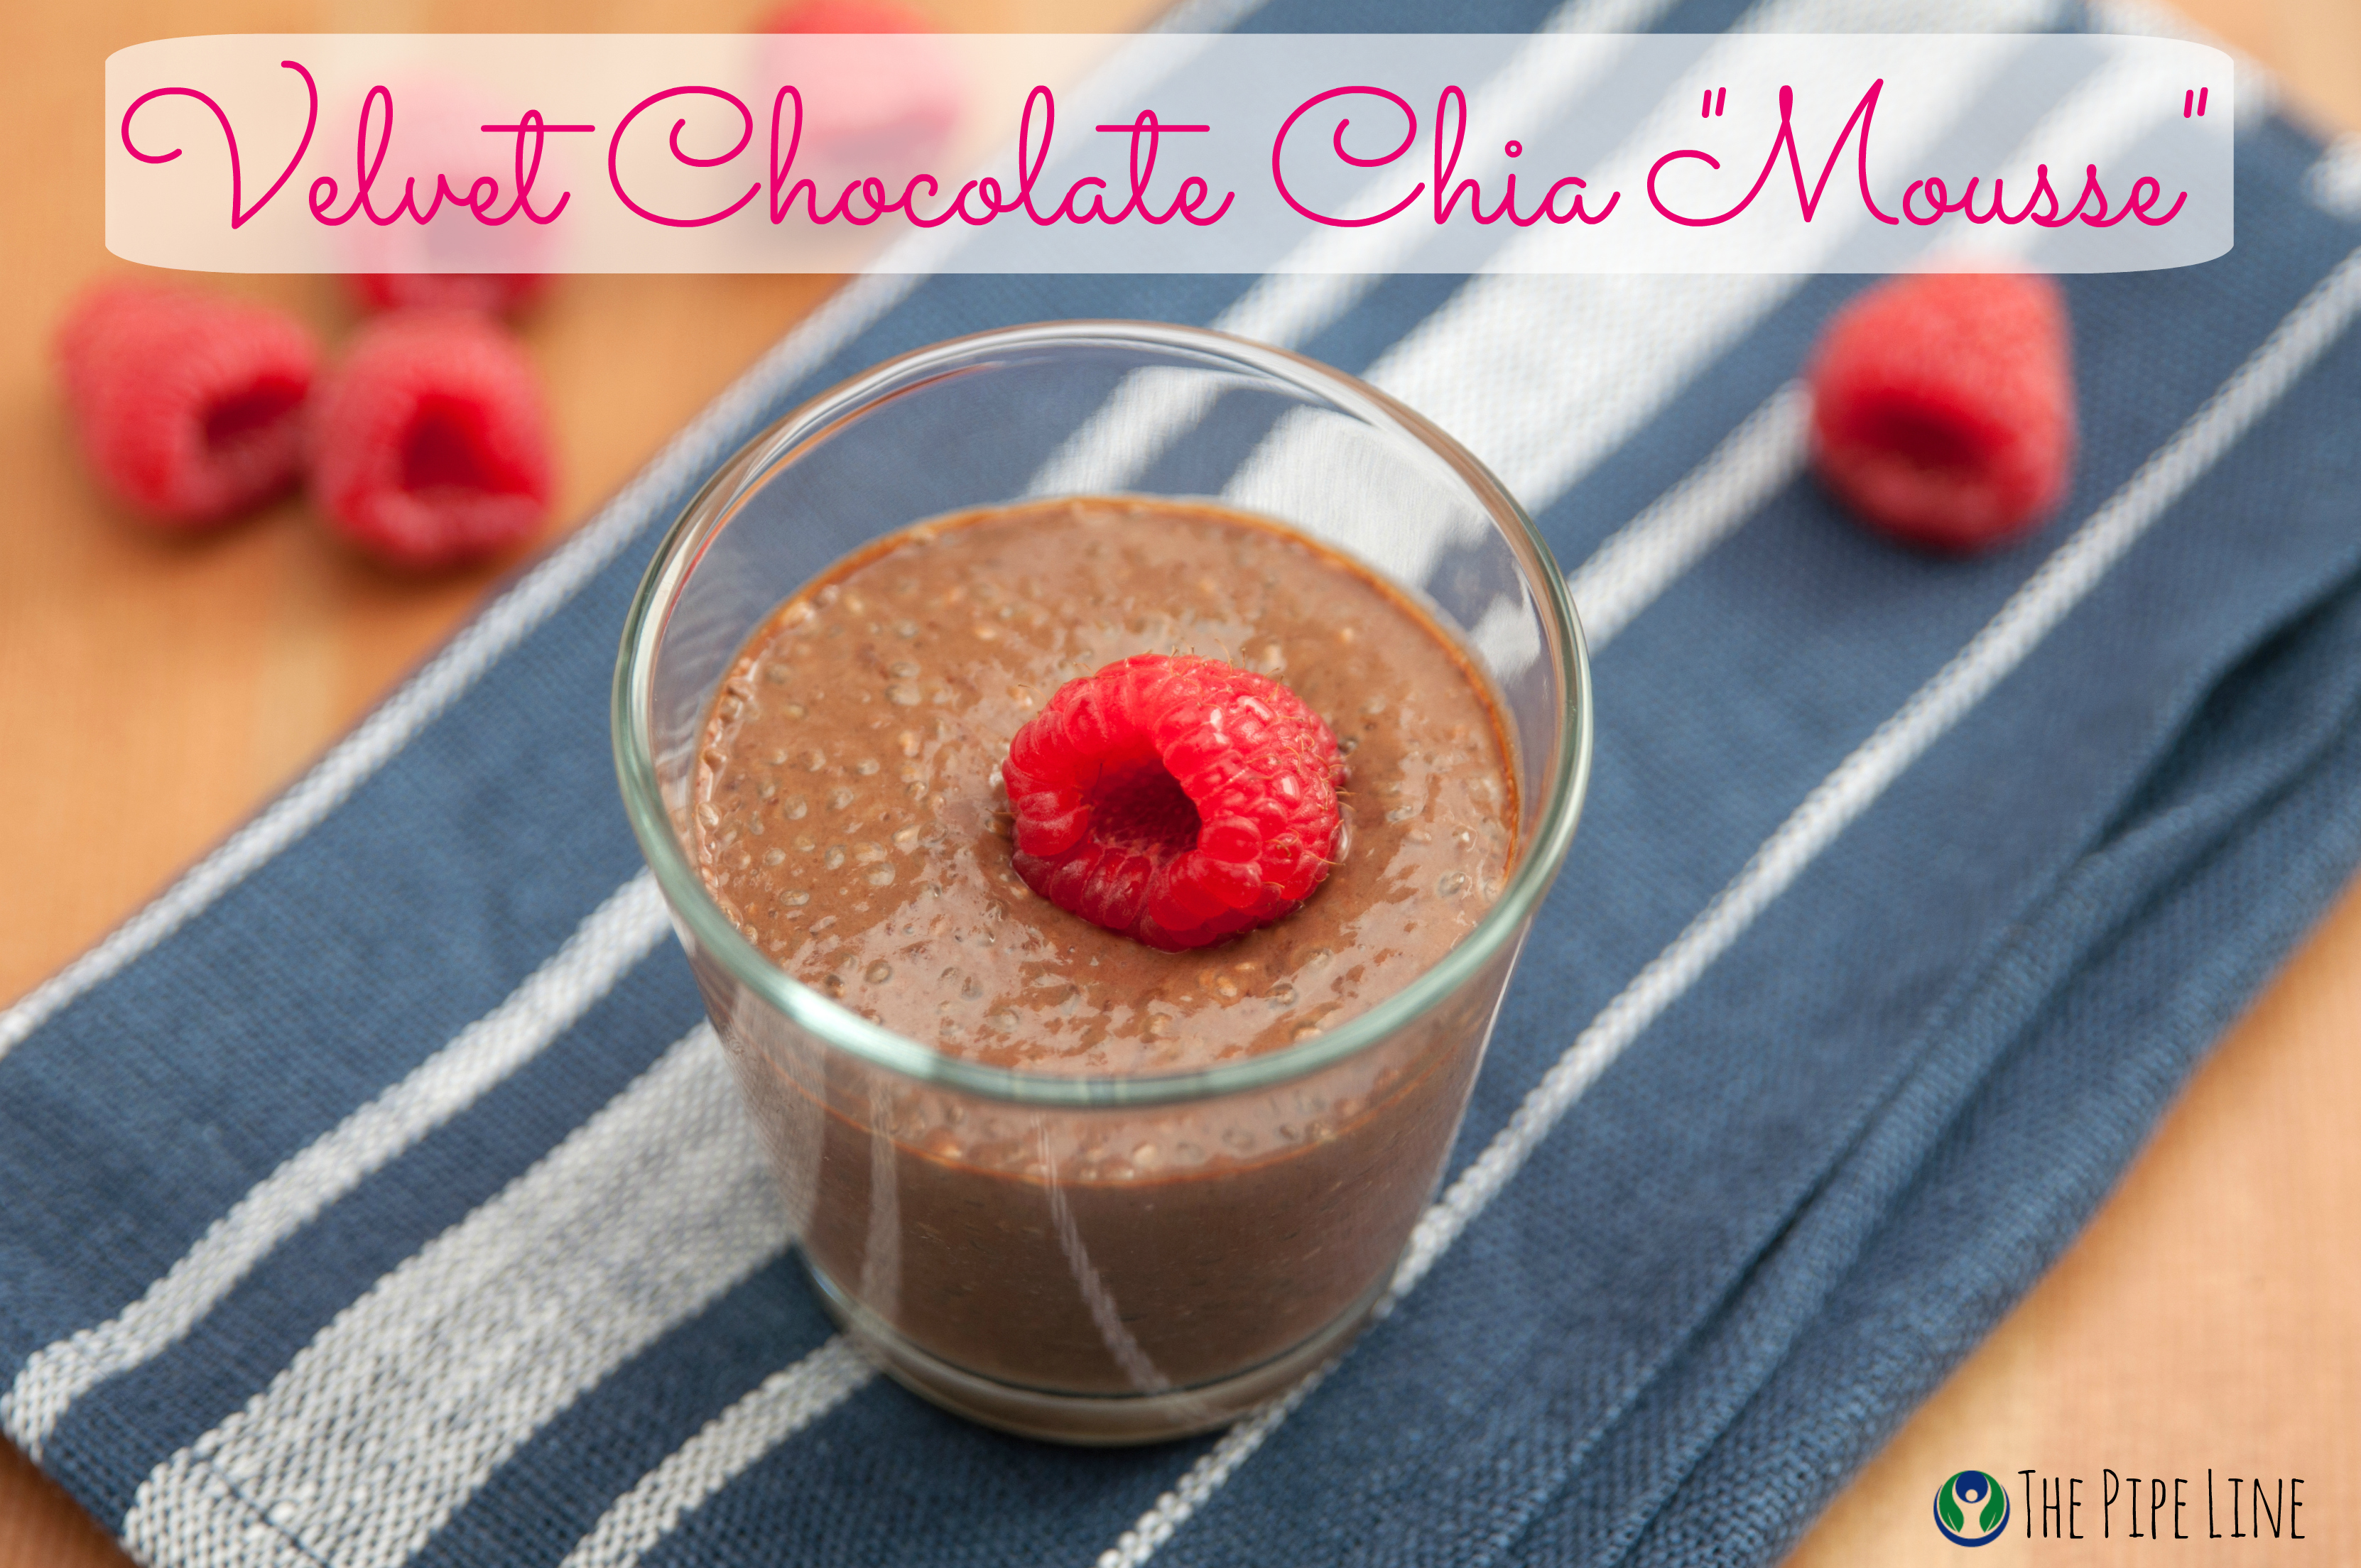 Piping Rock - The Pipe Line - Velvet Chocolate Chia Mousse - Recipe